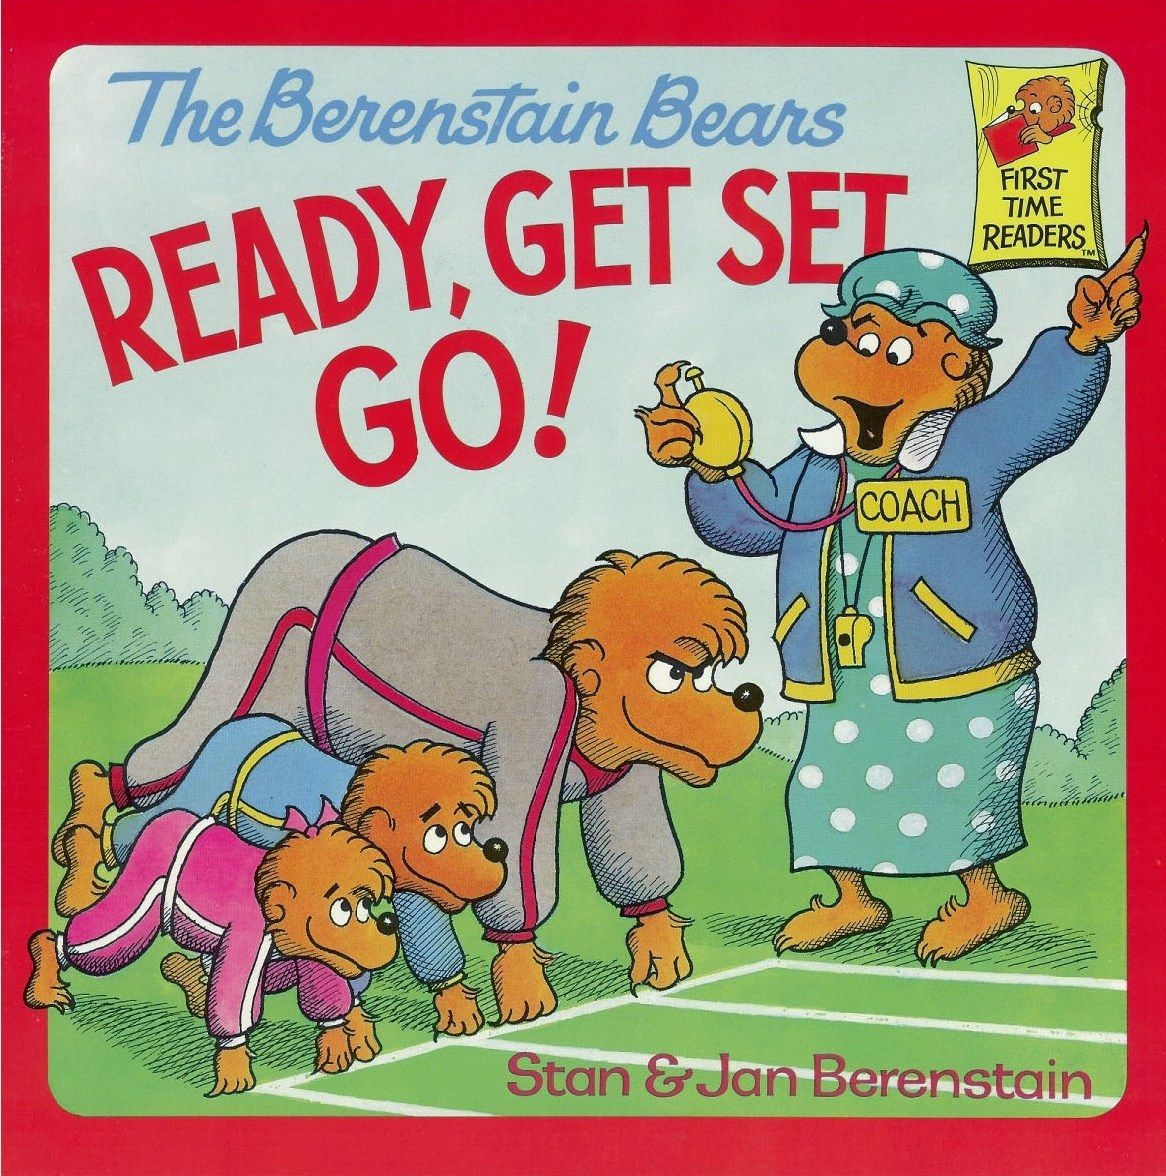 The Berenstain Bears Ready Get Set Go Time For Summer